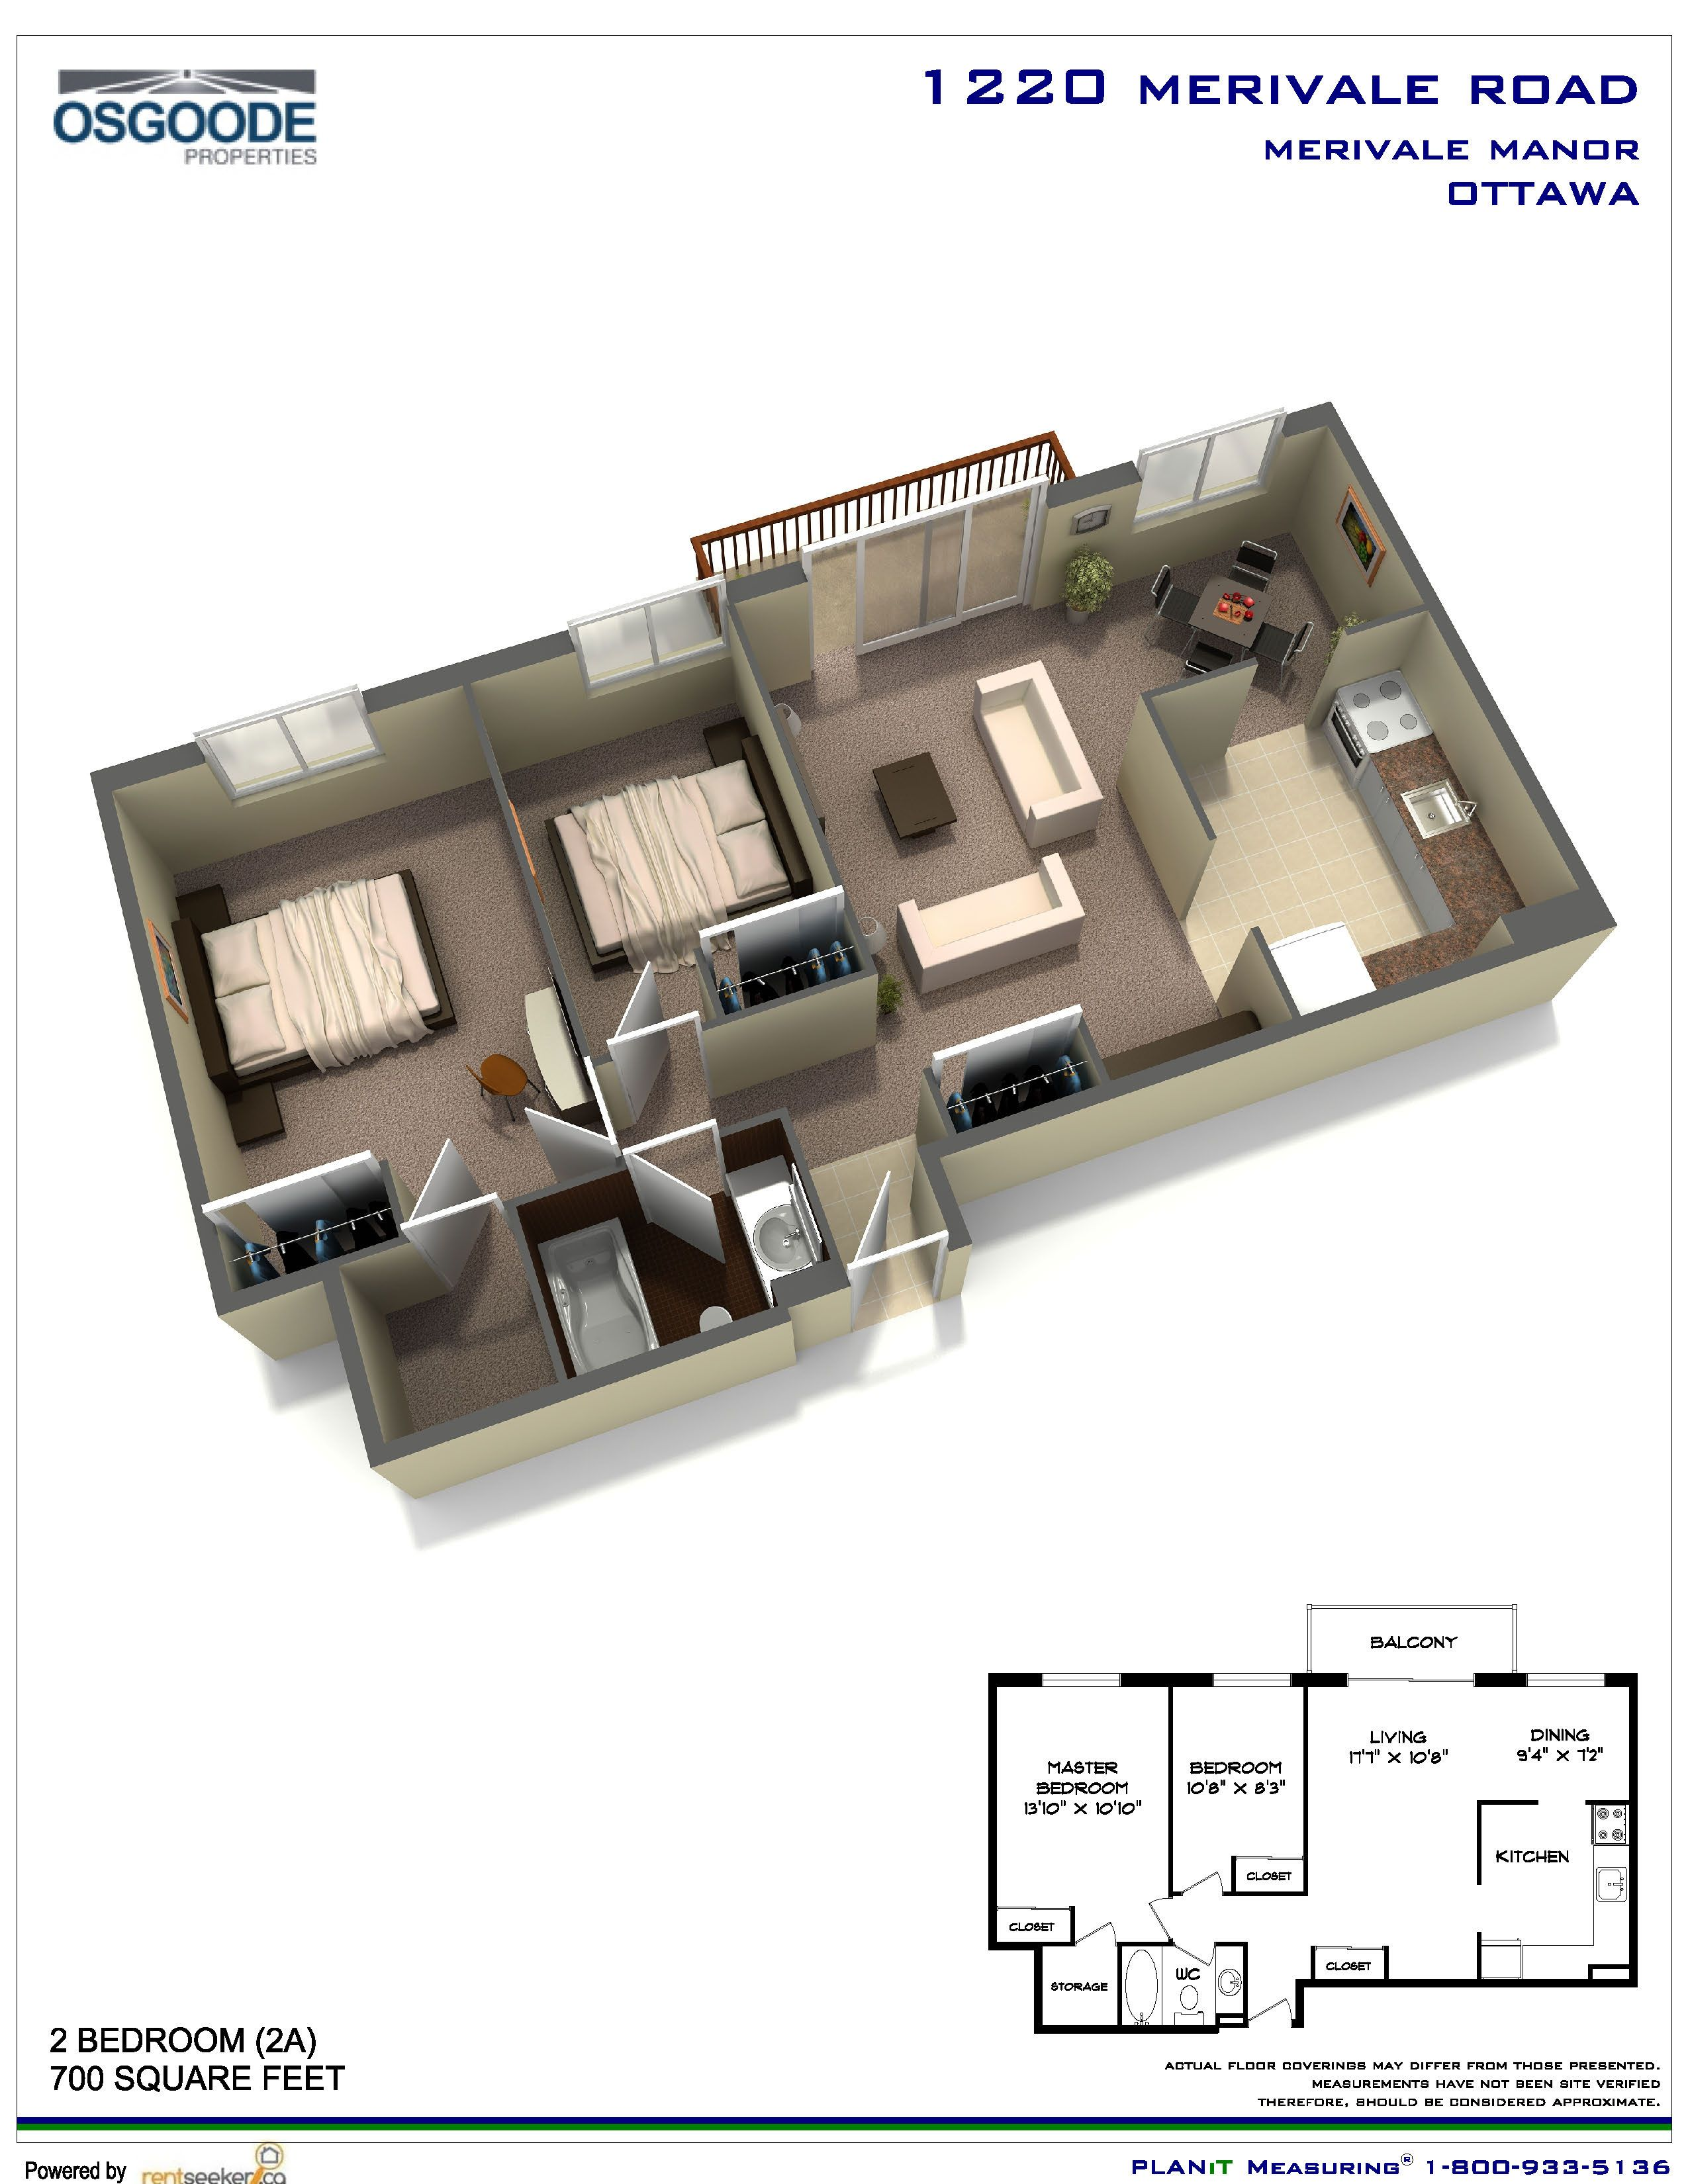 Apartments For Rent At Merivale Manor In Ottawa Renterspages Com Little House Plans House Plans Bedroom Floor Plans